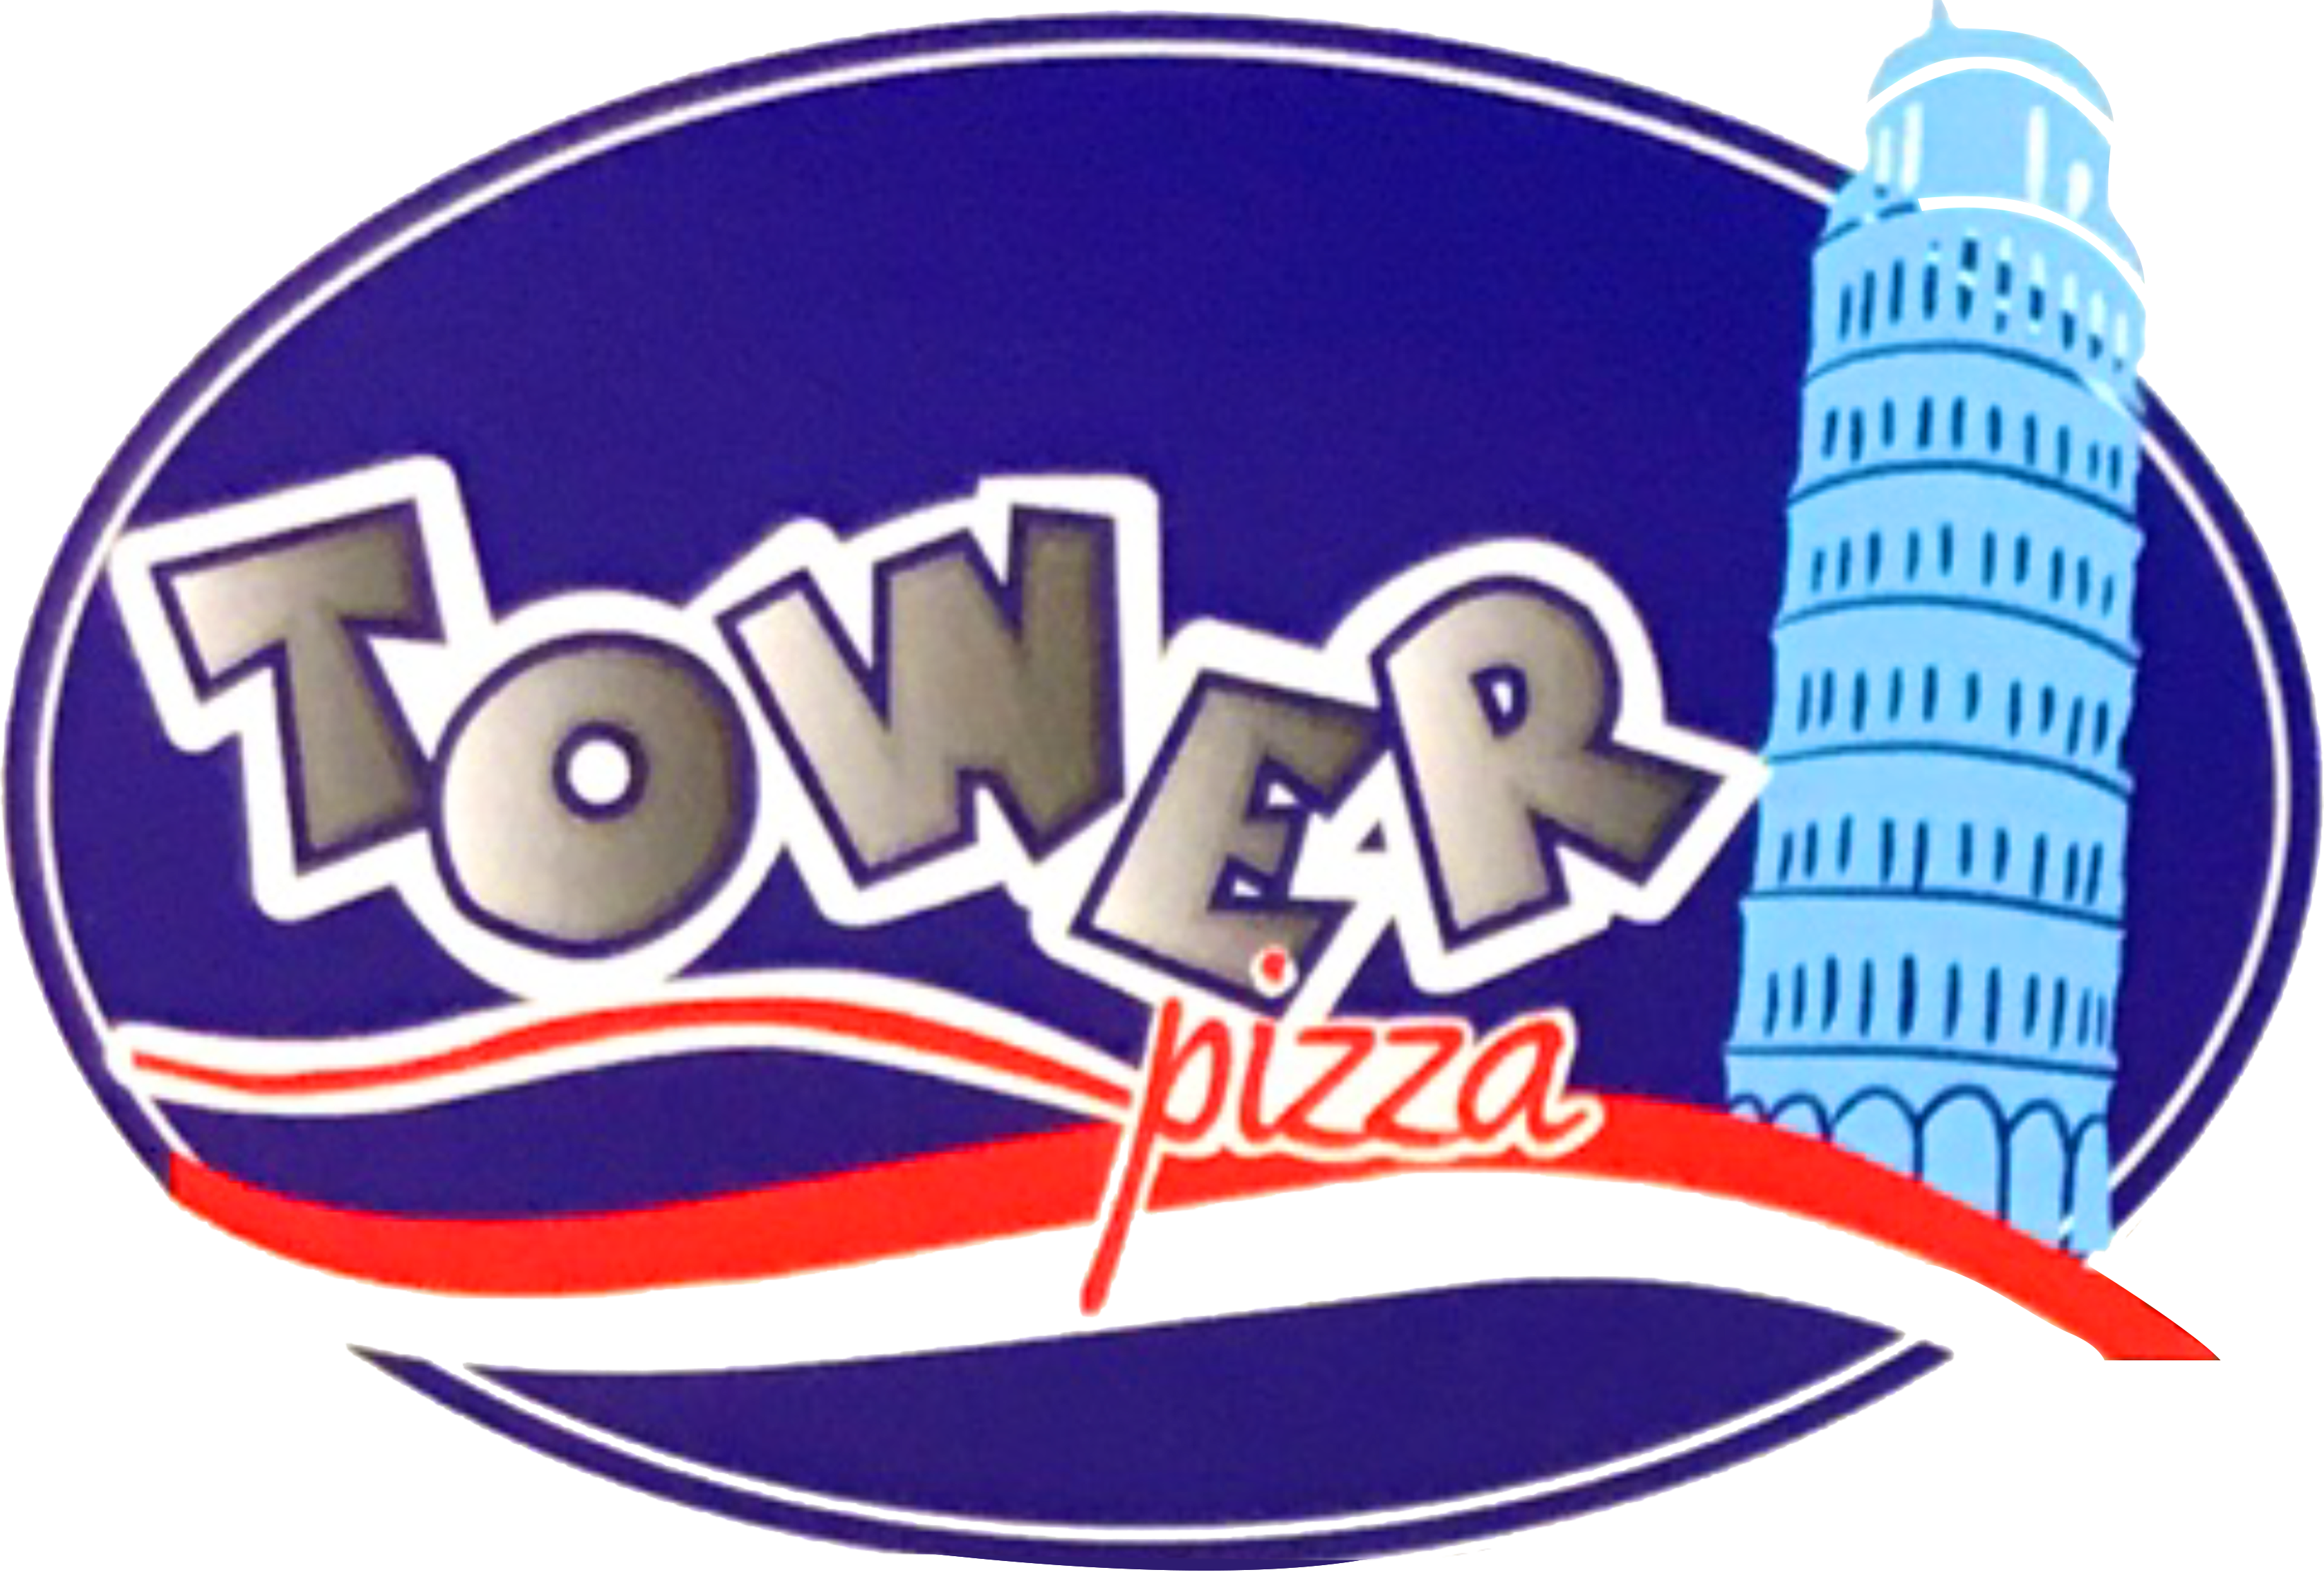 Tower Pizza Tower Pizza Bridlington Takeaway Order Online